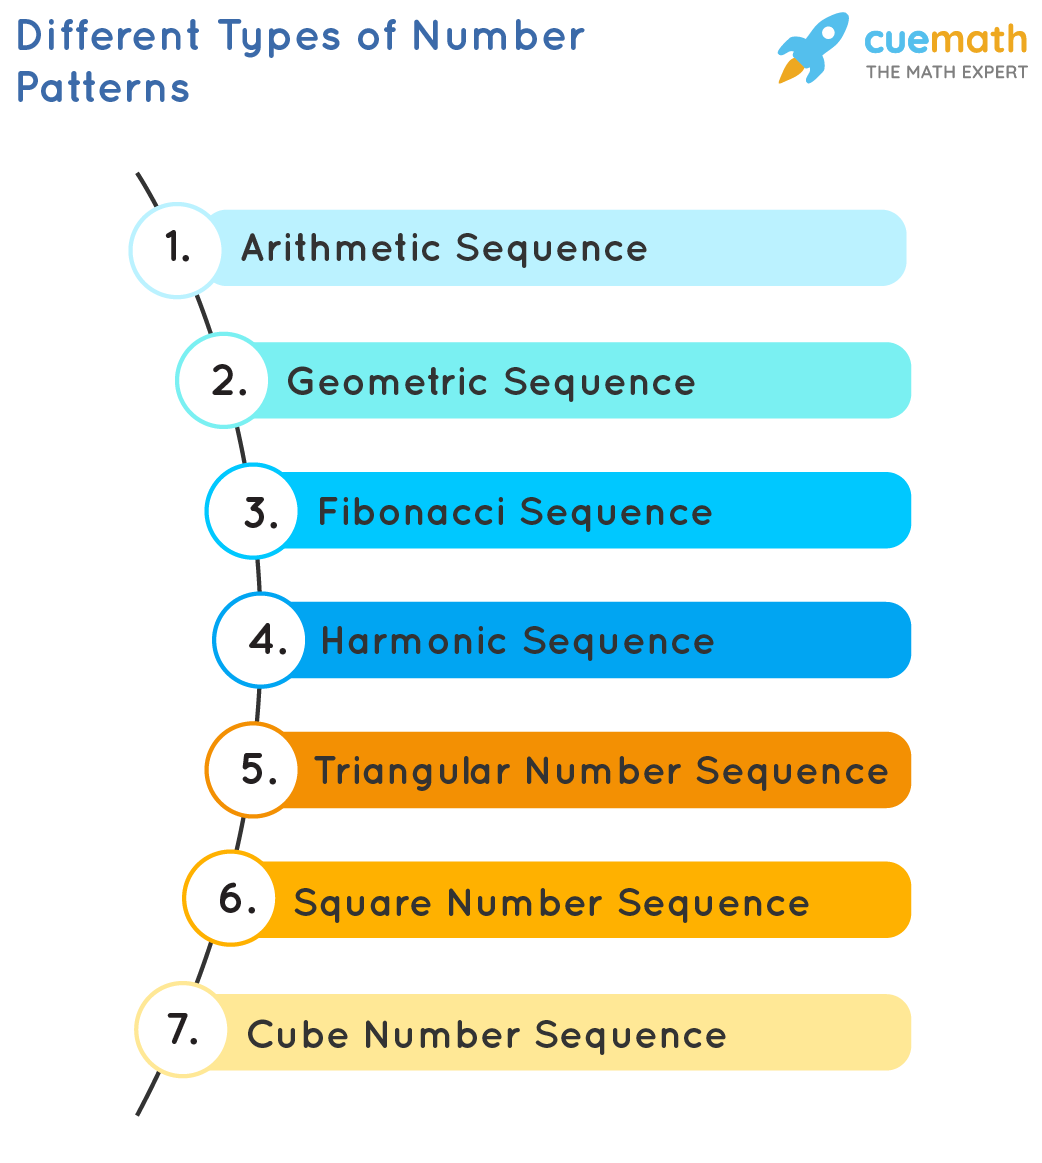 Different Types of Number Patterns